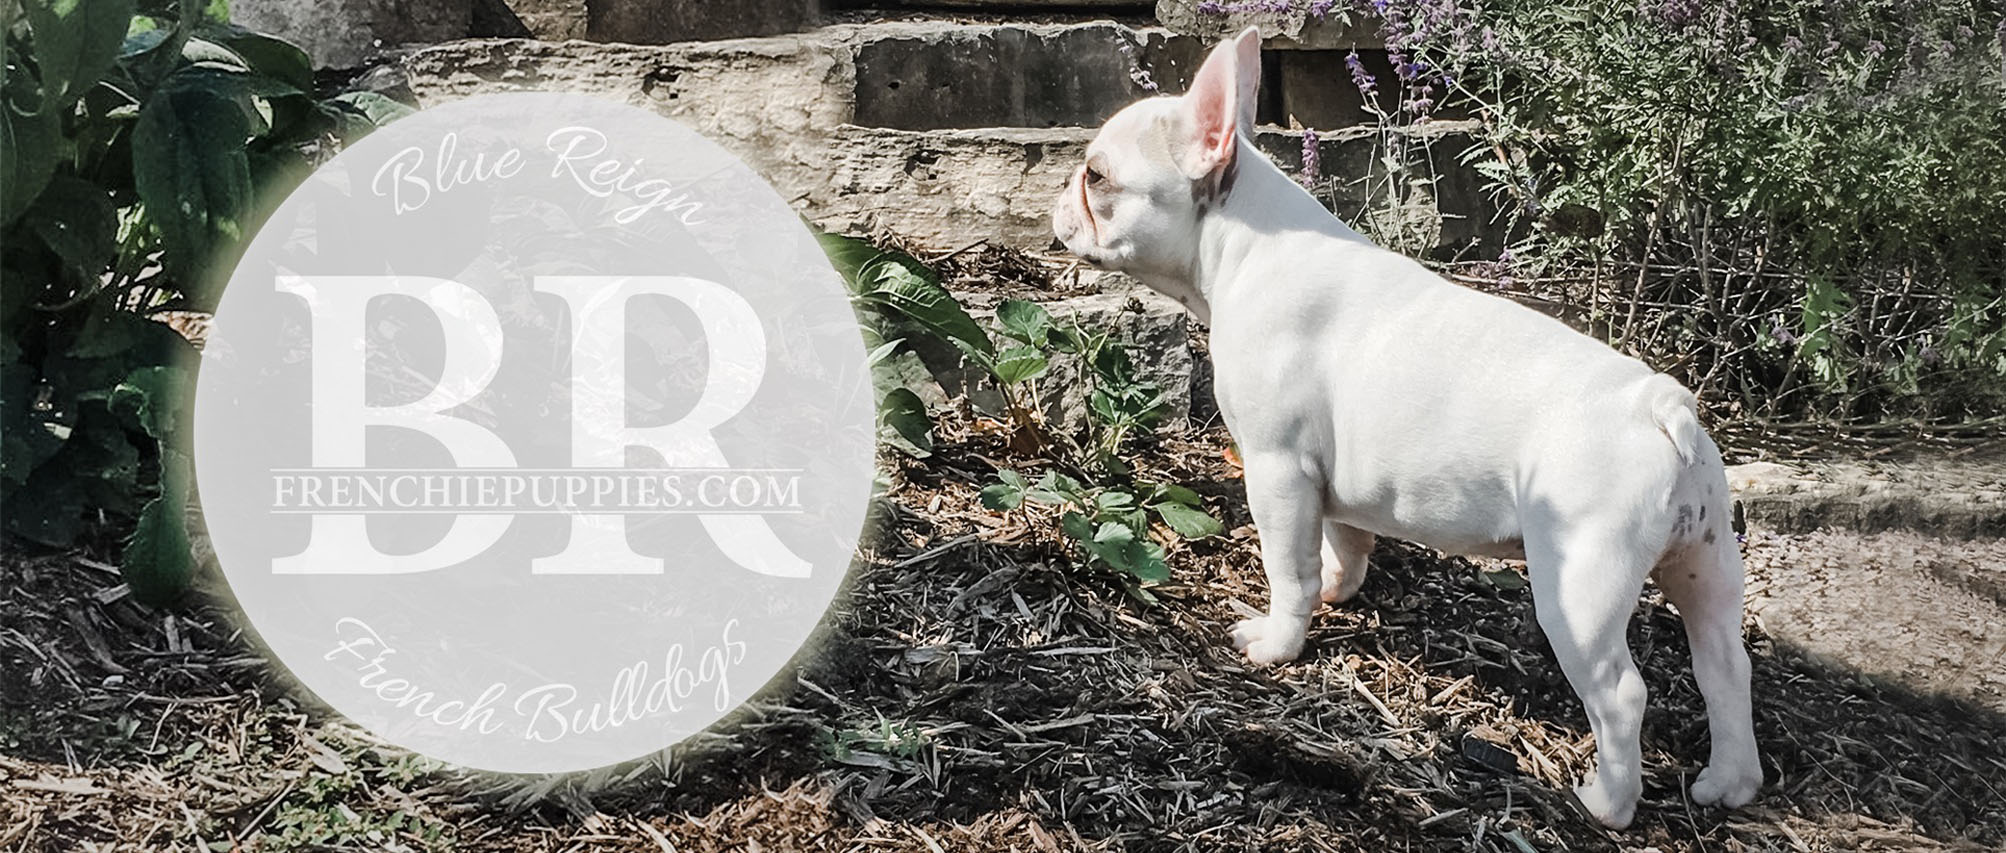 Blue Reign French Bulldogs frenchiepuppies.com